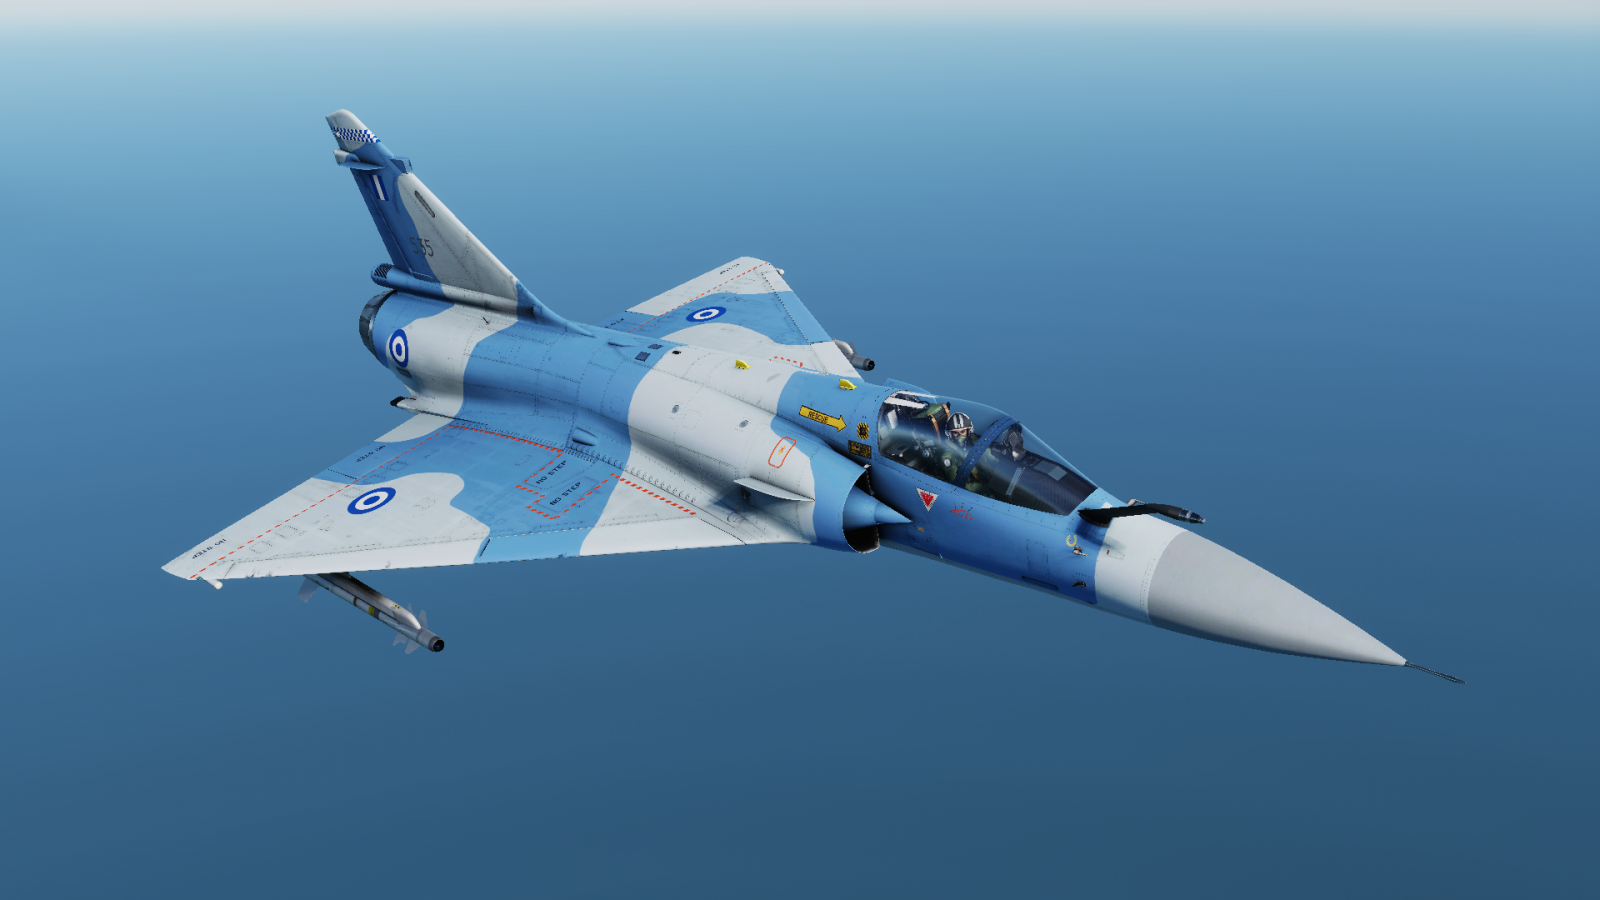 Hellenic Air Force Mirage 2000-5